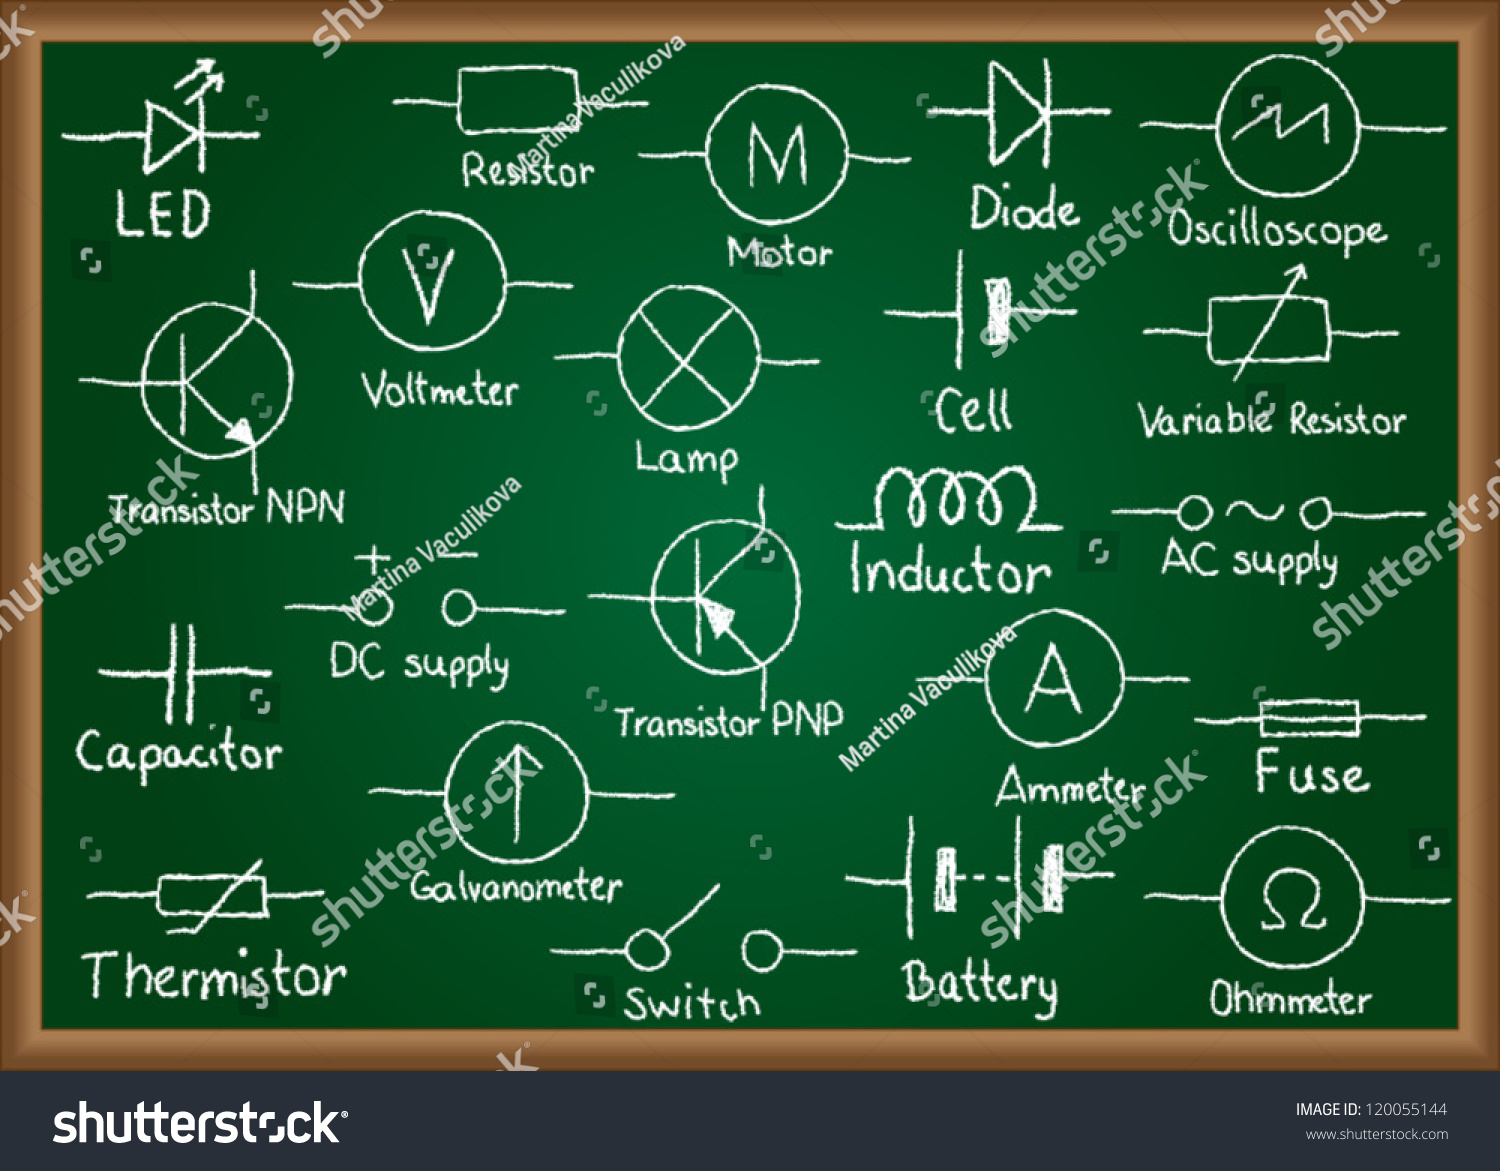 Illustration Electrical Circuit Symbols Drawn On Stock Vector Drawings Of Chalkboard